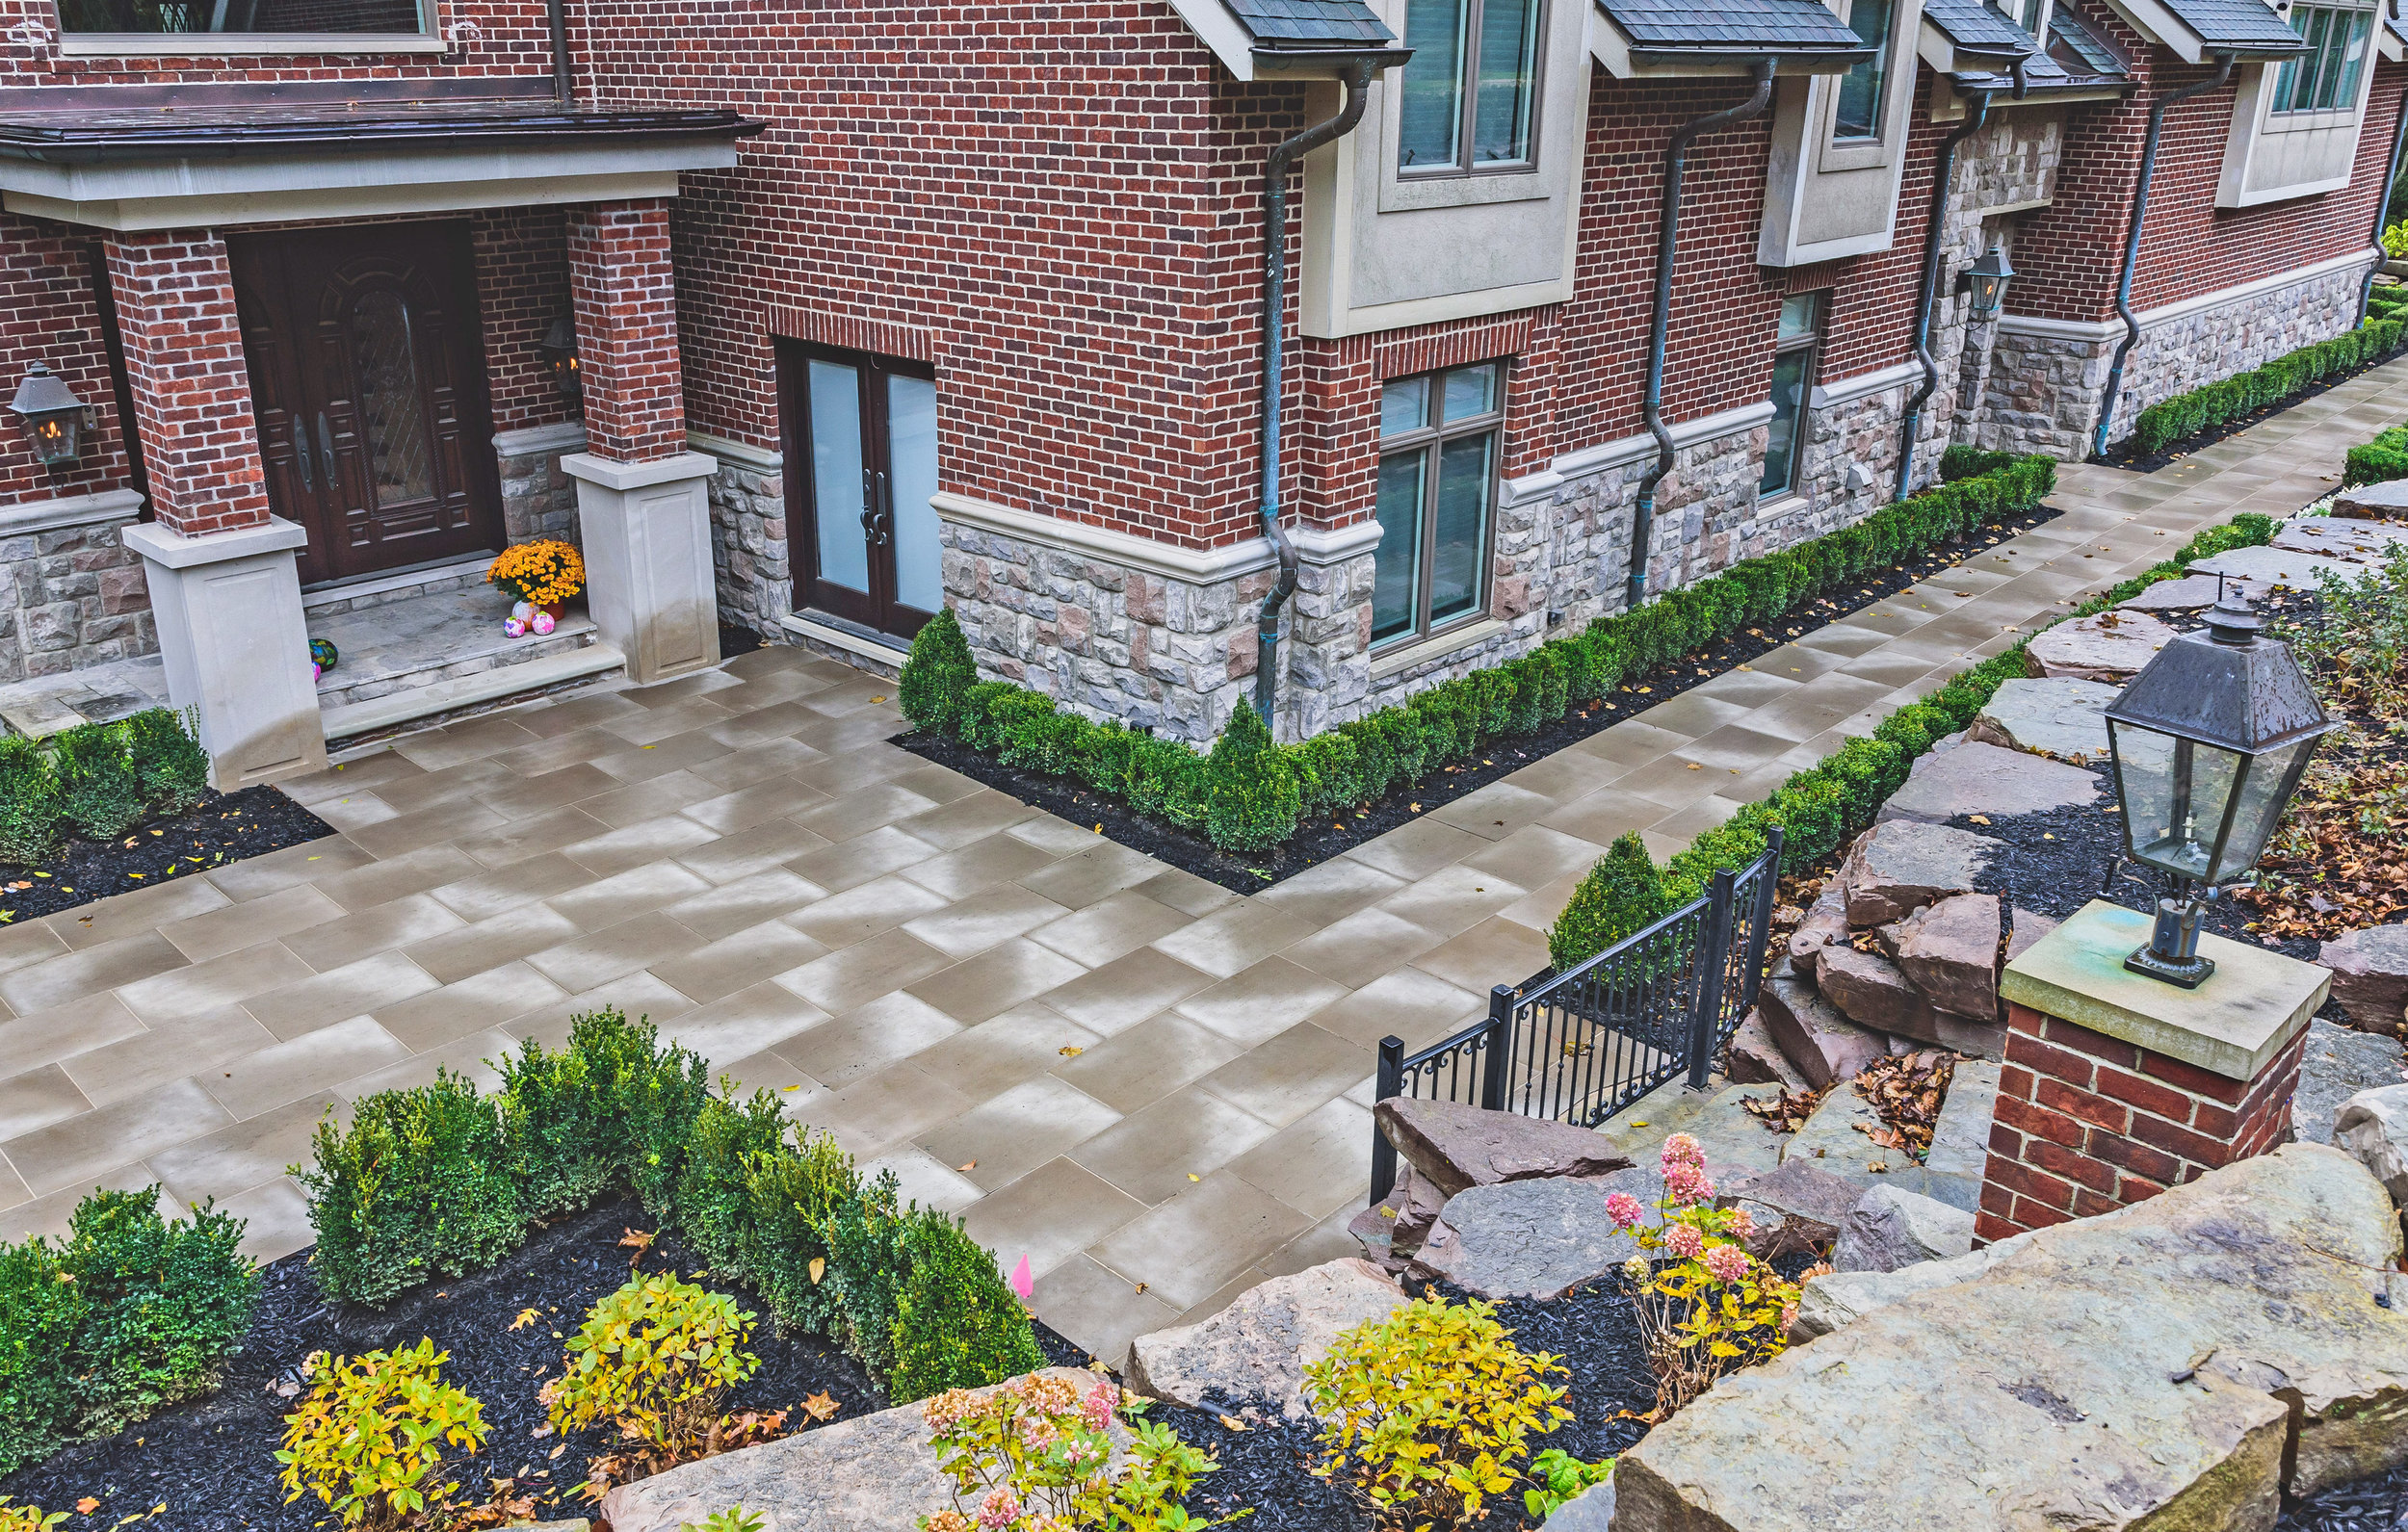 haddad-quality-landscaping-michigan-bloomfield-stately-home-01.jpg